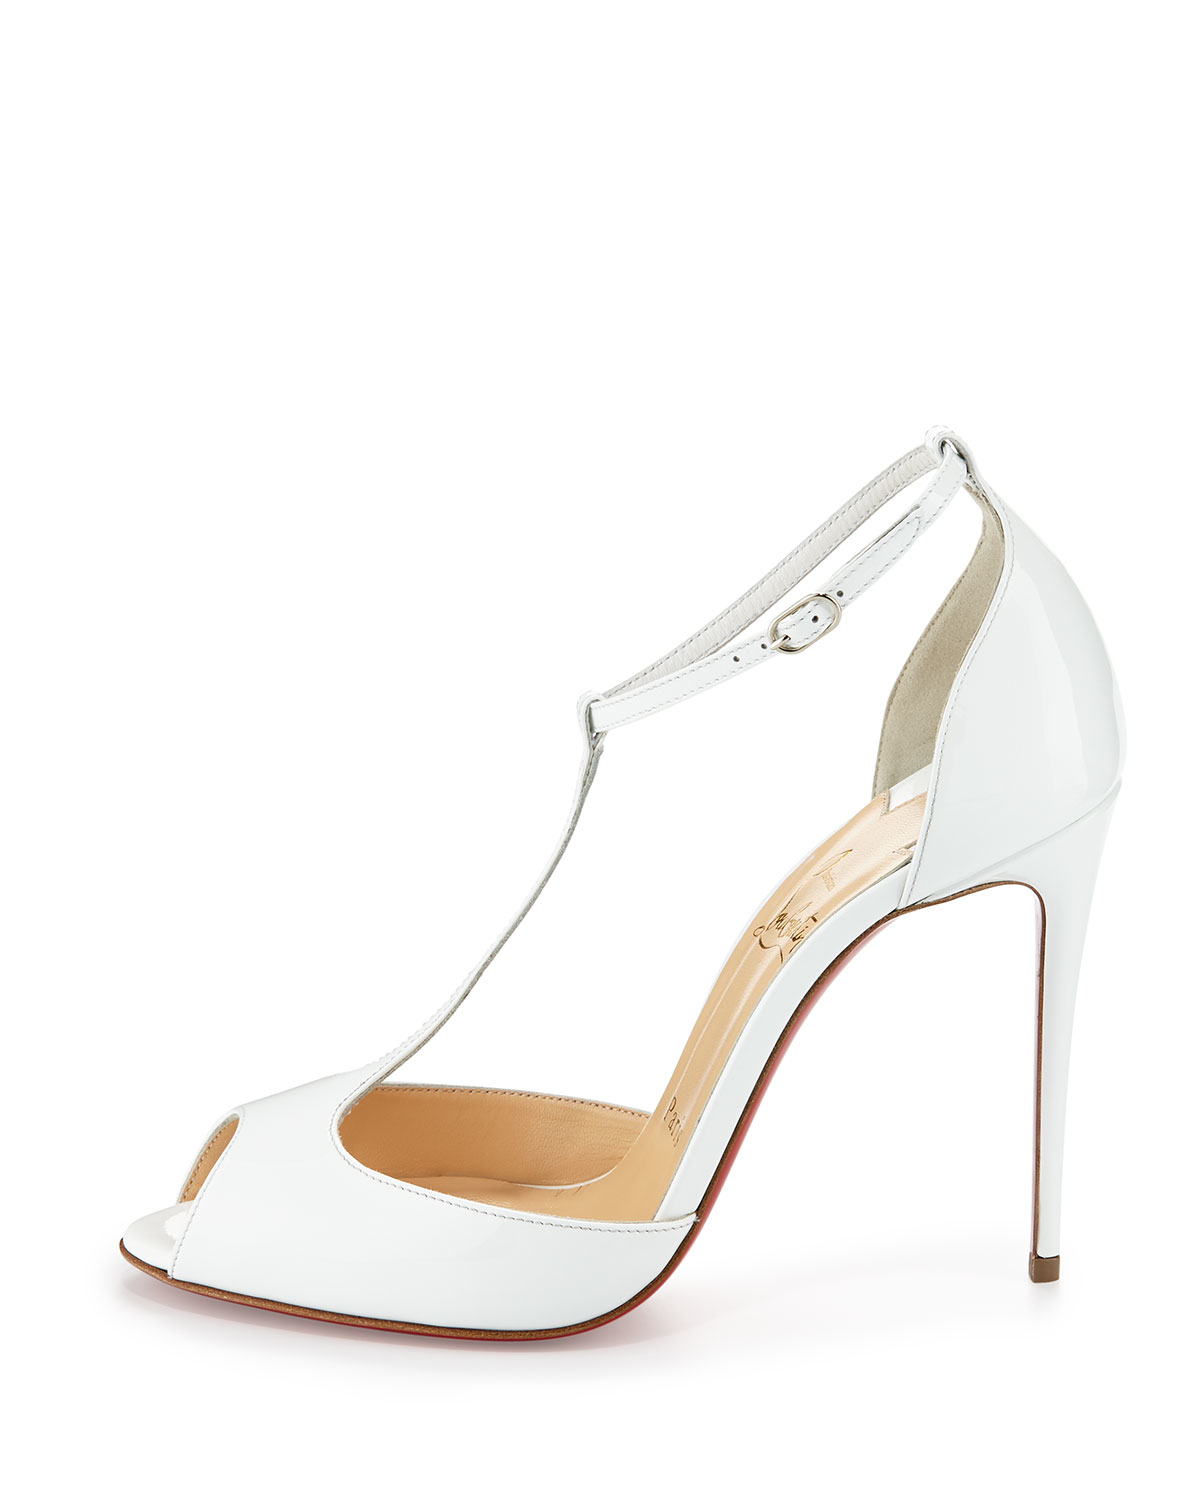 Christian louboutin Senora Patent 100mm Red Sole T-strap Sandal in ...